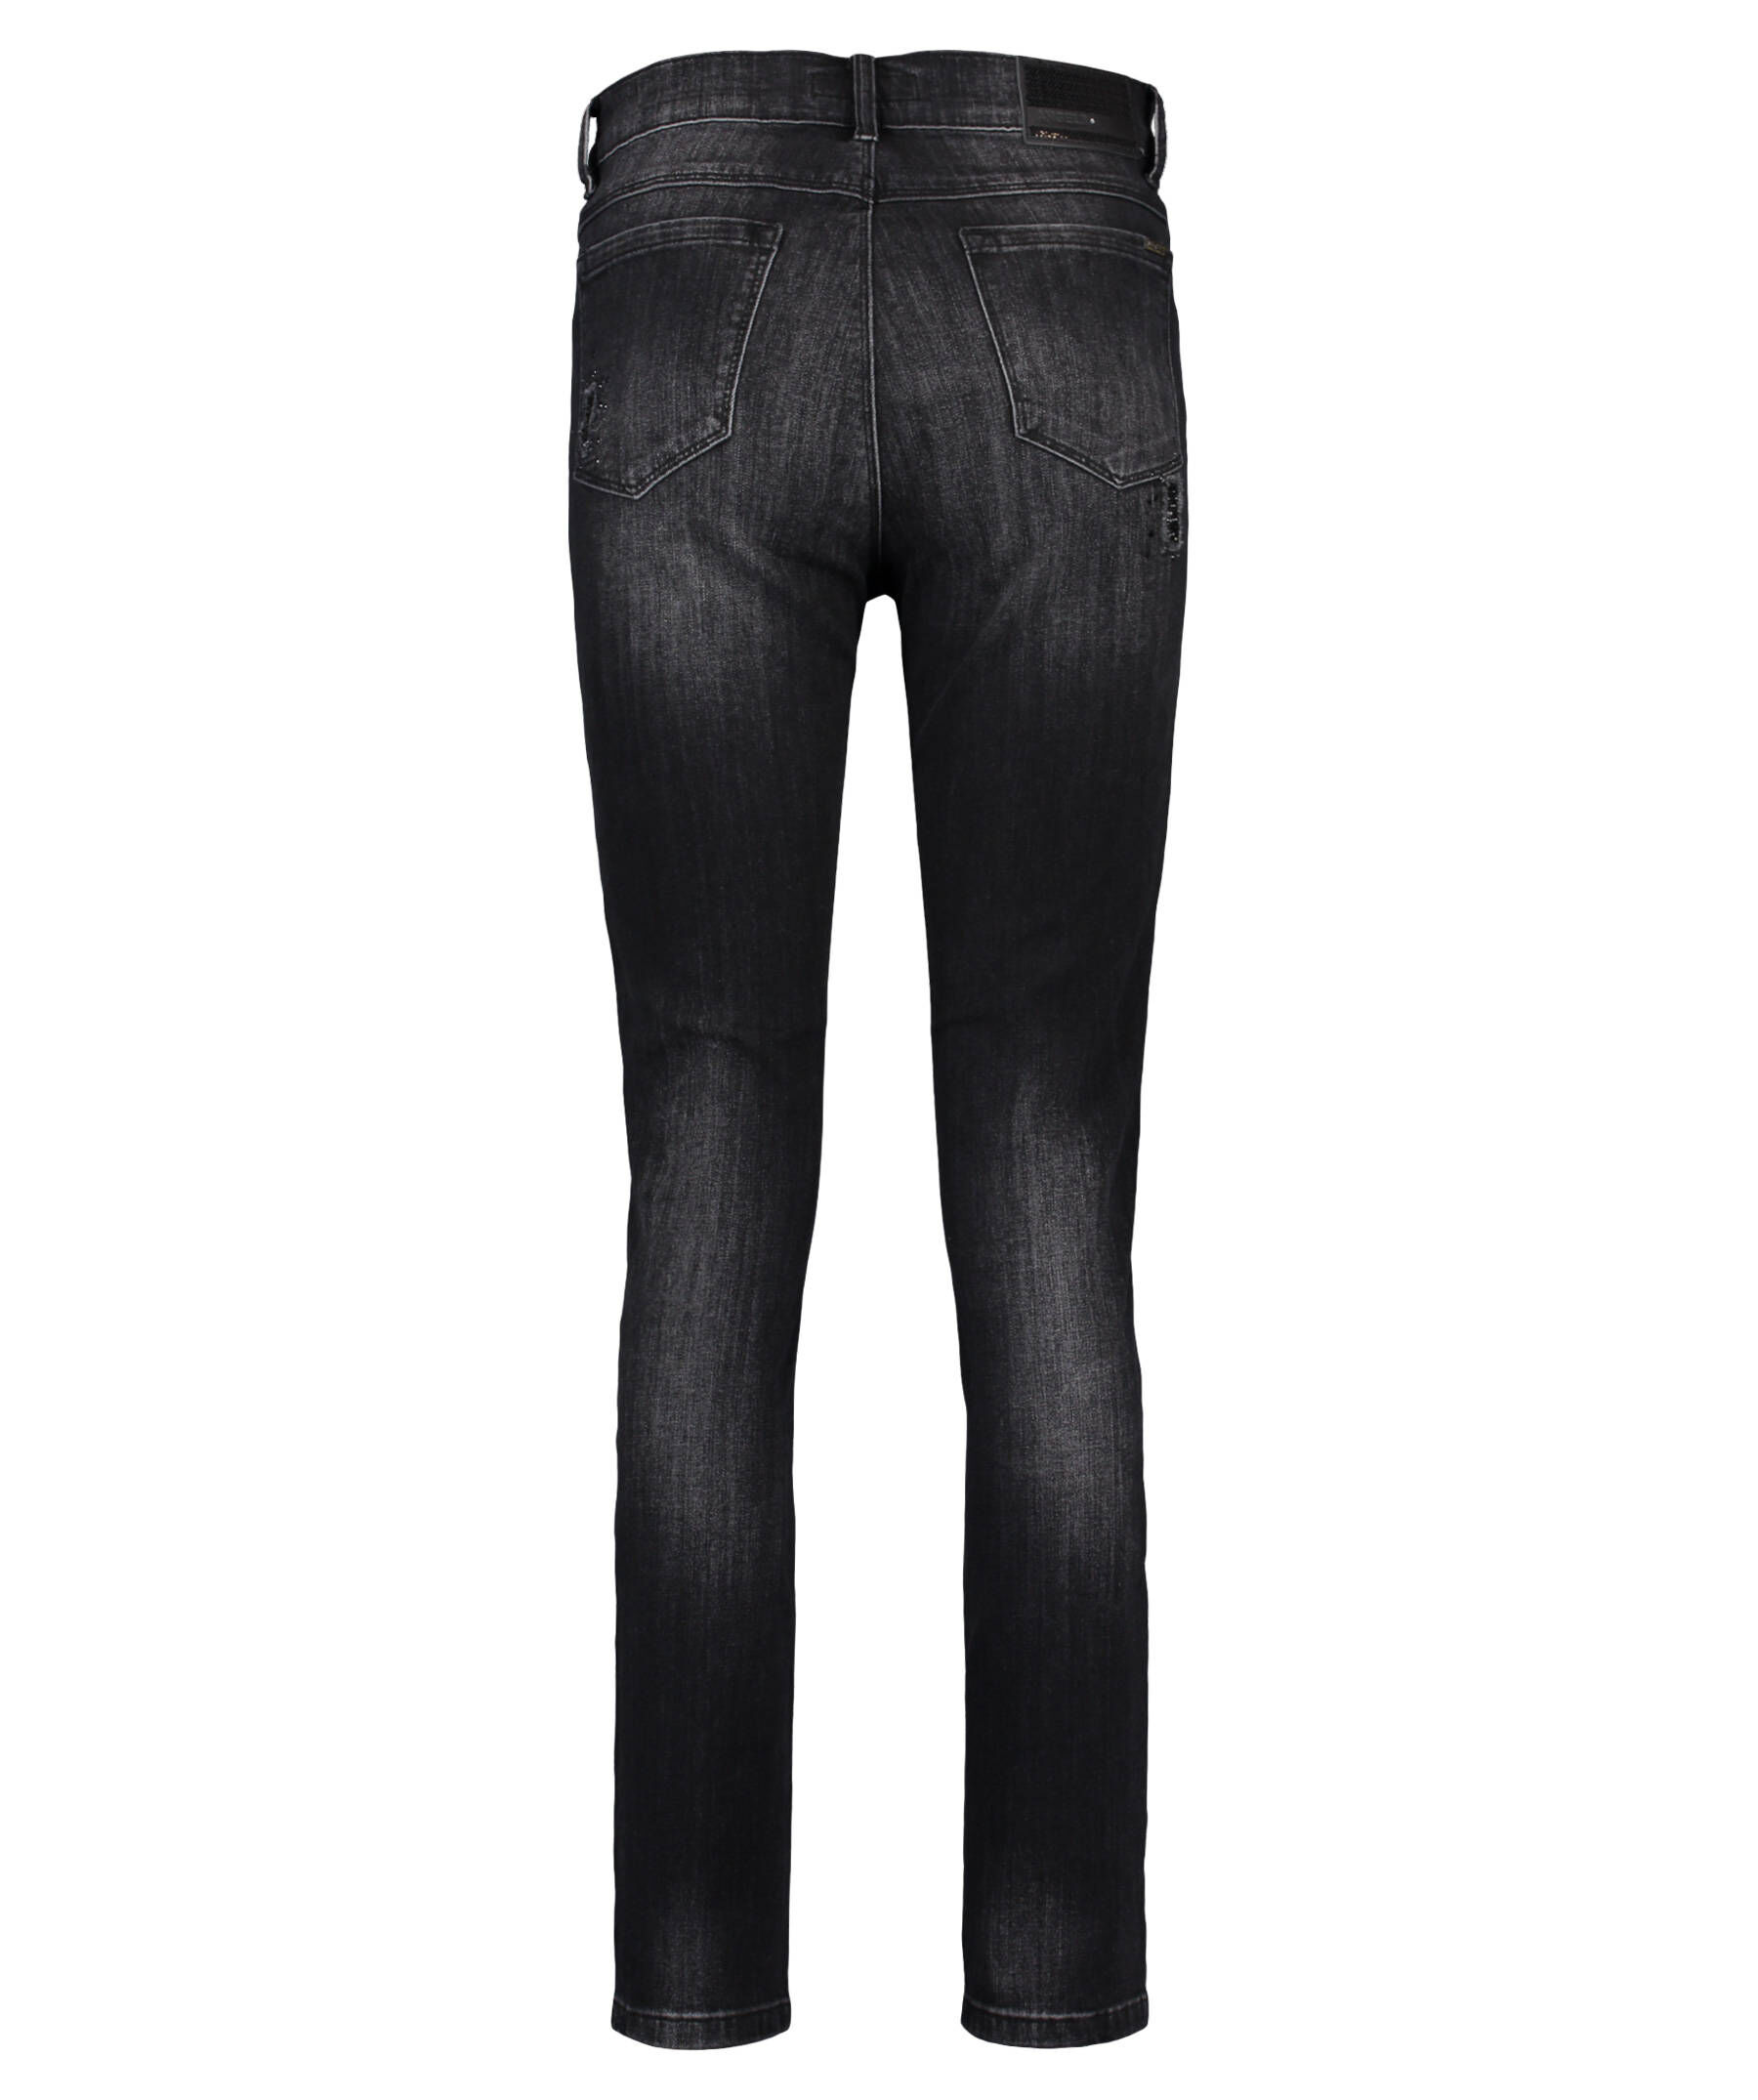 angels damen jeans skinny strass 350 skinny fit schwarz blau ebay. Black Bedroom Furniture Sets. Home Design Ideas